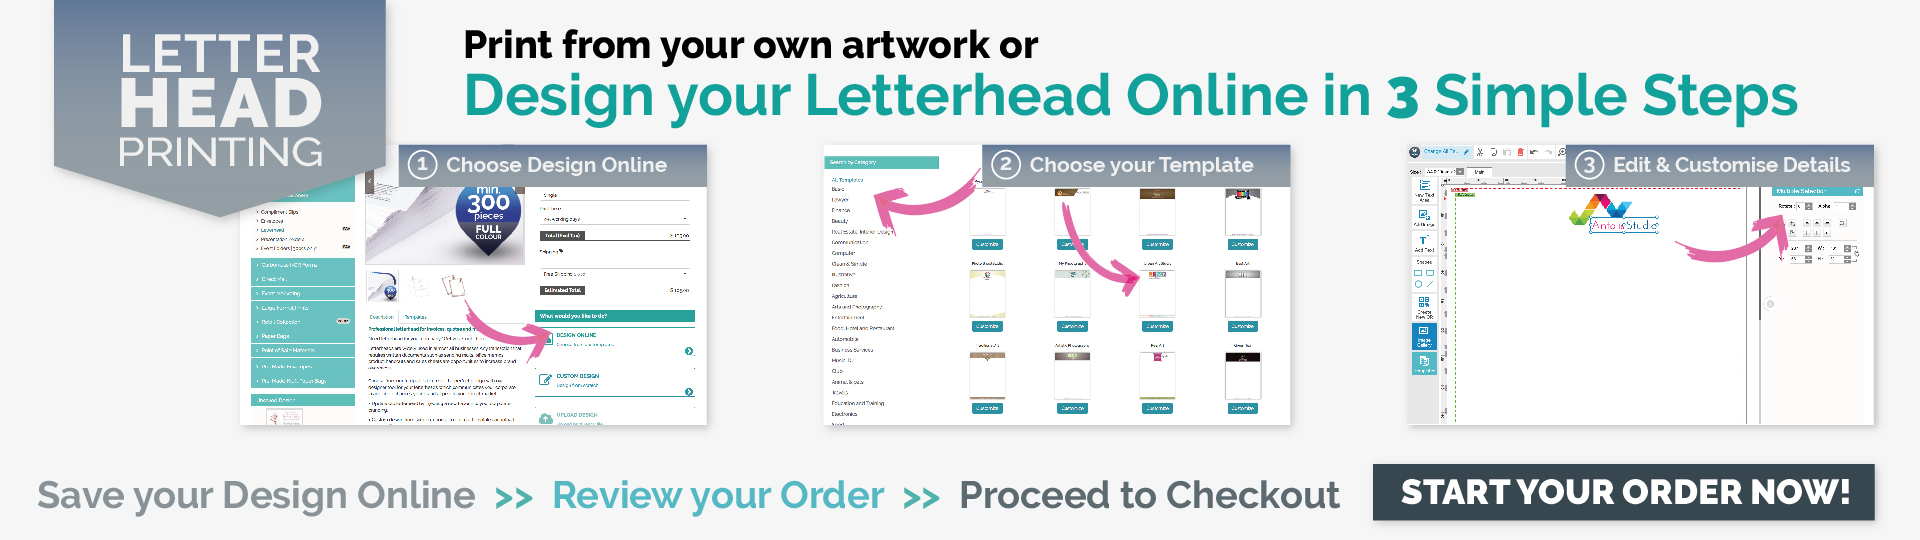 Design, Print & Order Letterhead online in 3 simple steps!